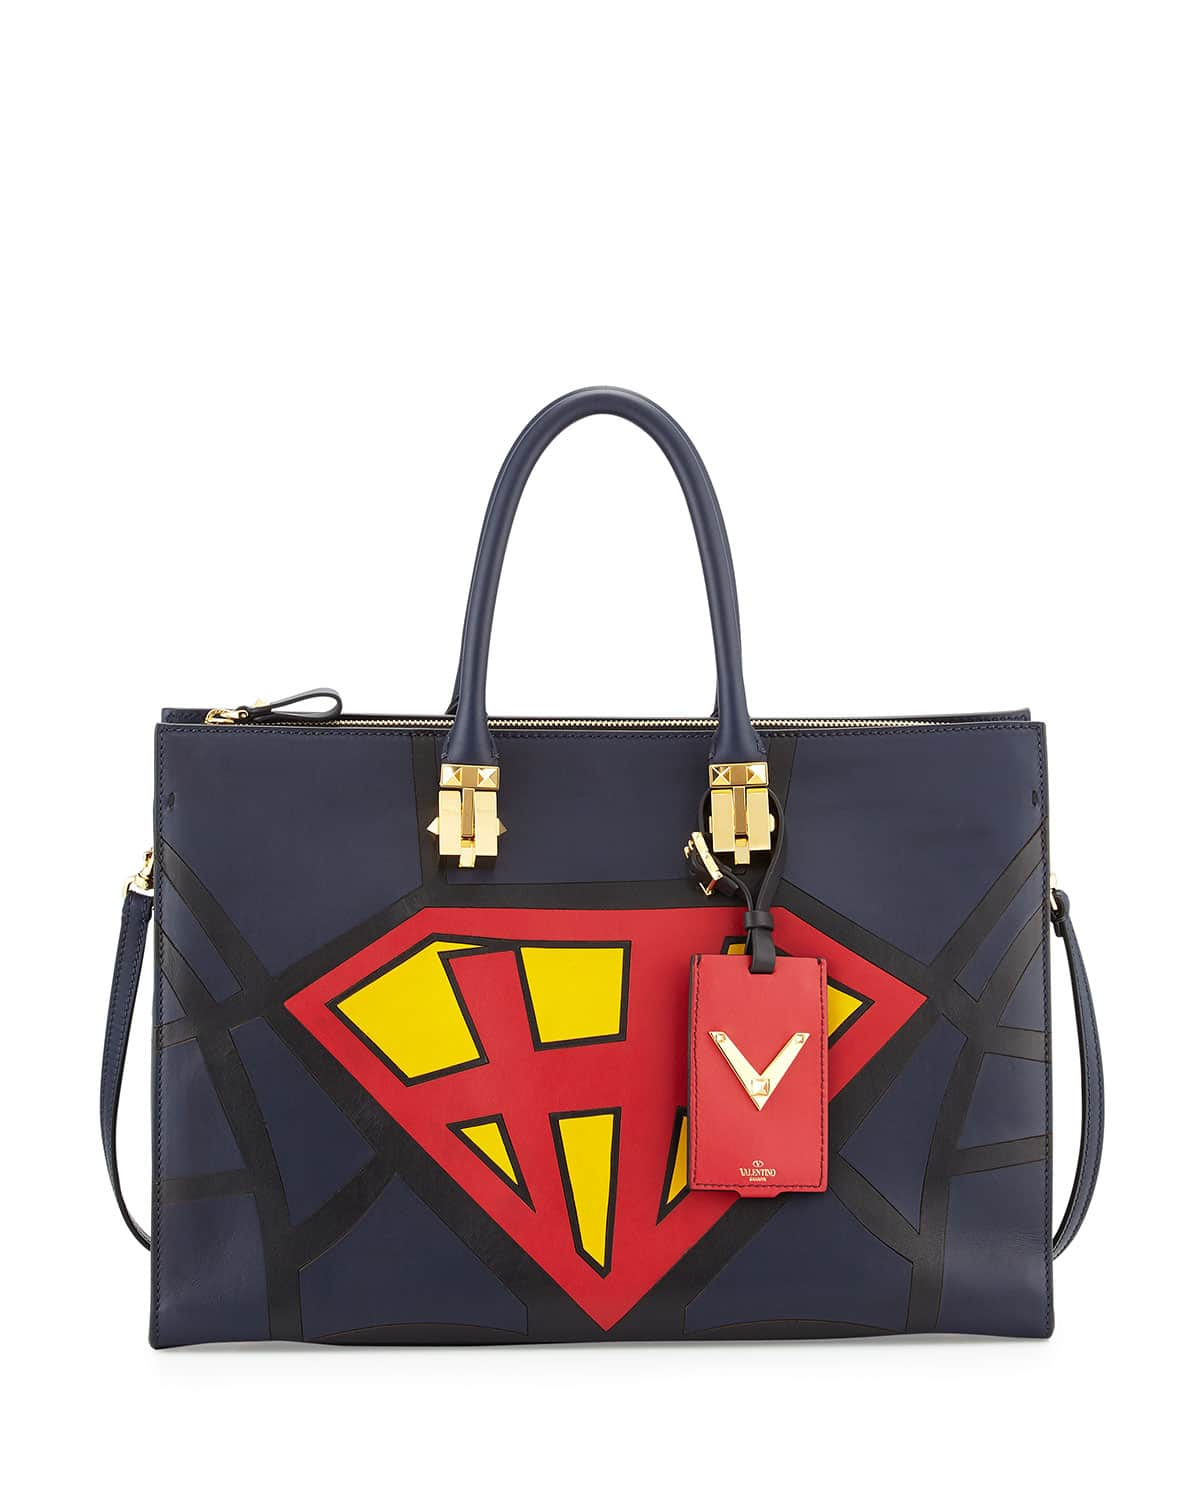 Valentino Resort 2016 Bag Collection Featuring Superheroes